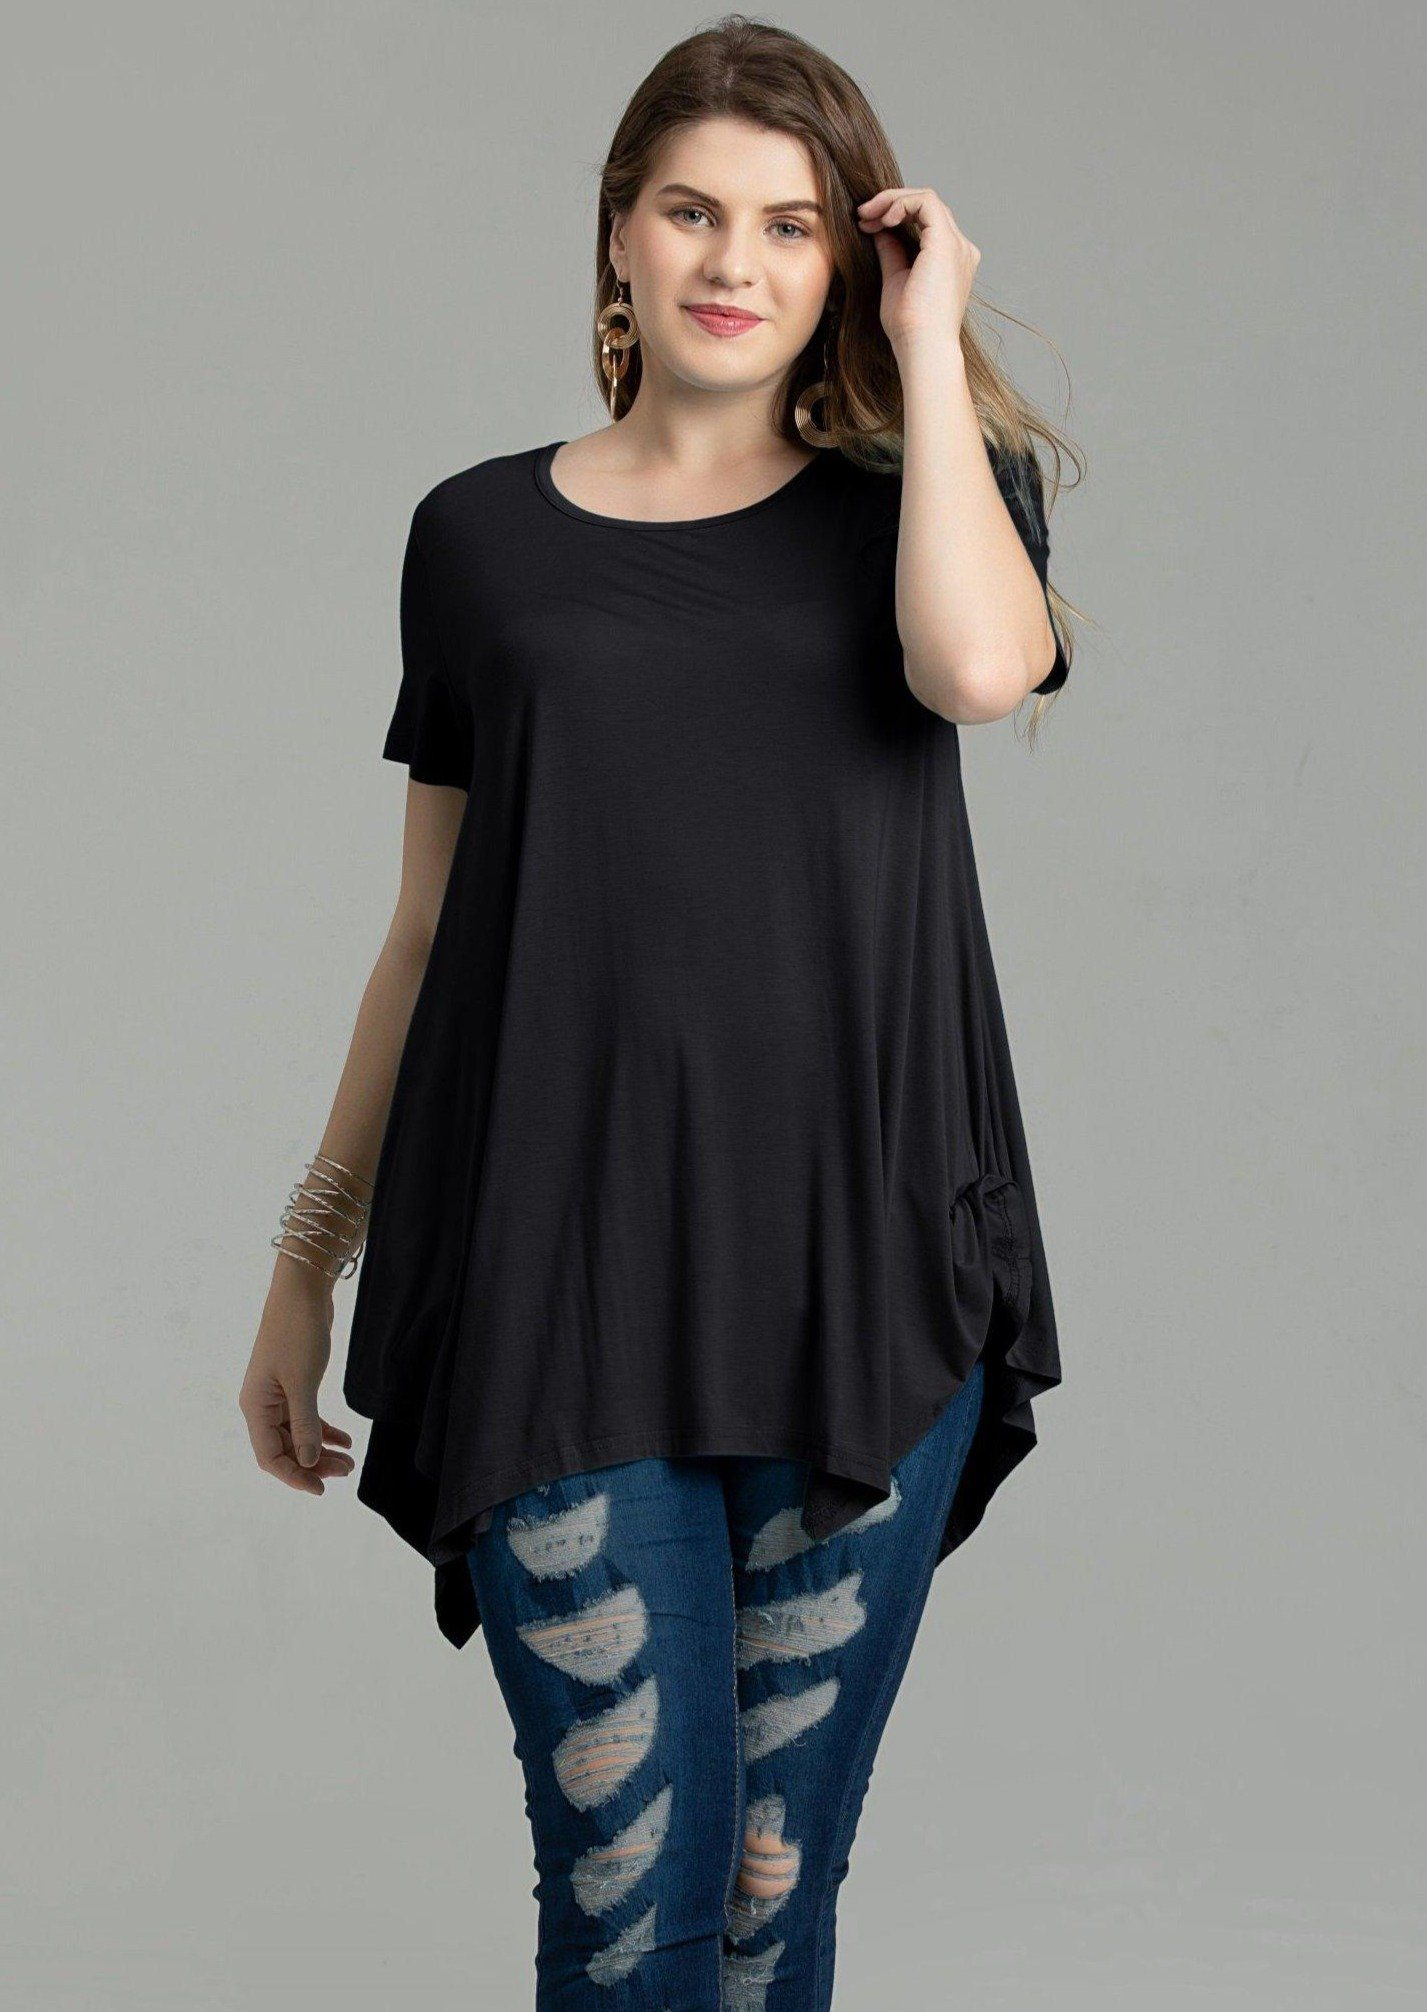 Larace Short Sleeve Flattering Comfy Blouse Shirt Tops Tops LARACE S black